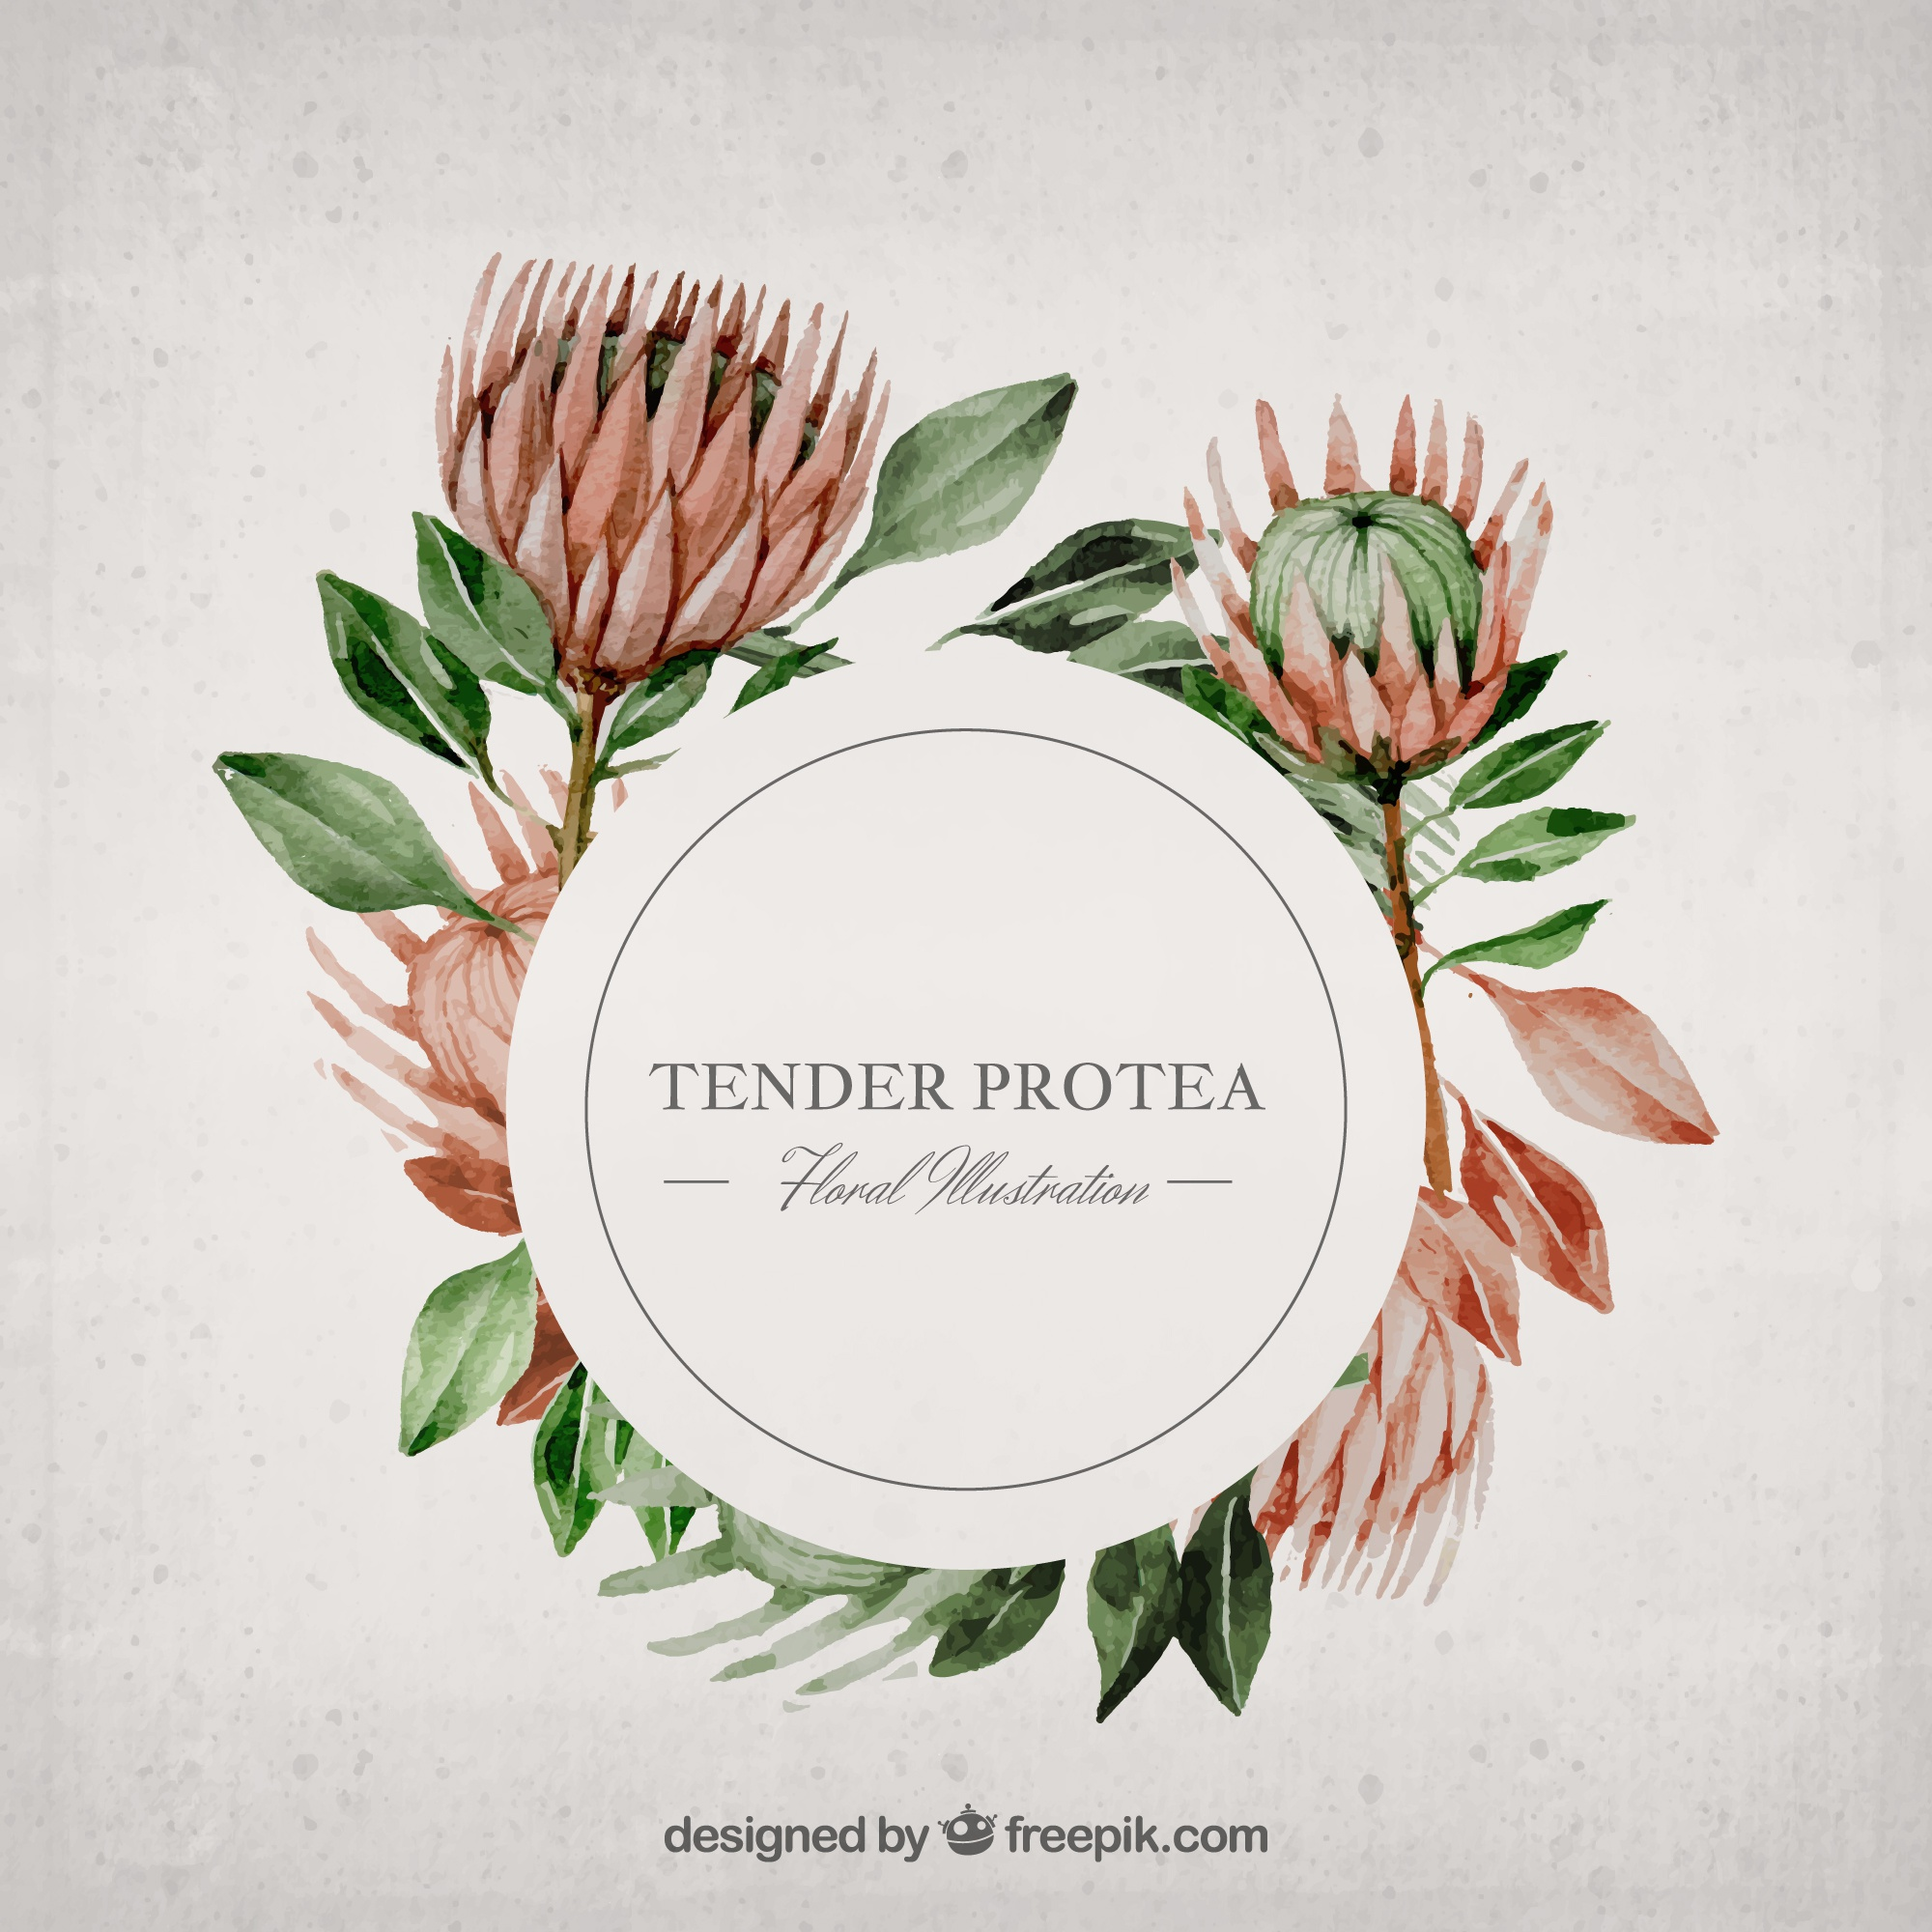 Aquarell Protea Illustration